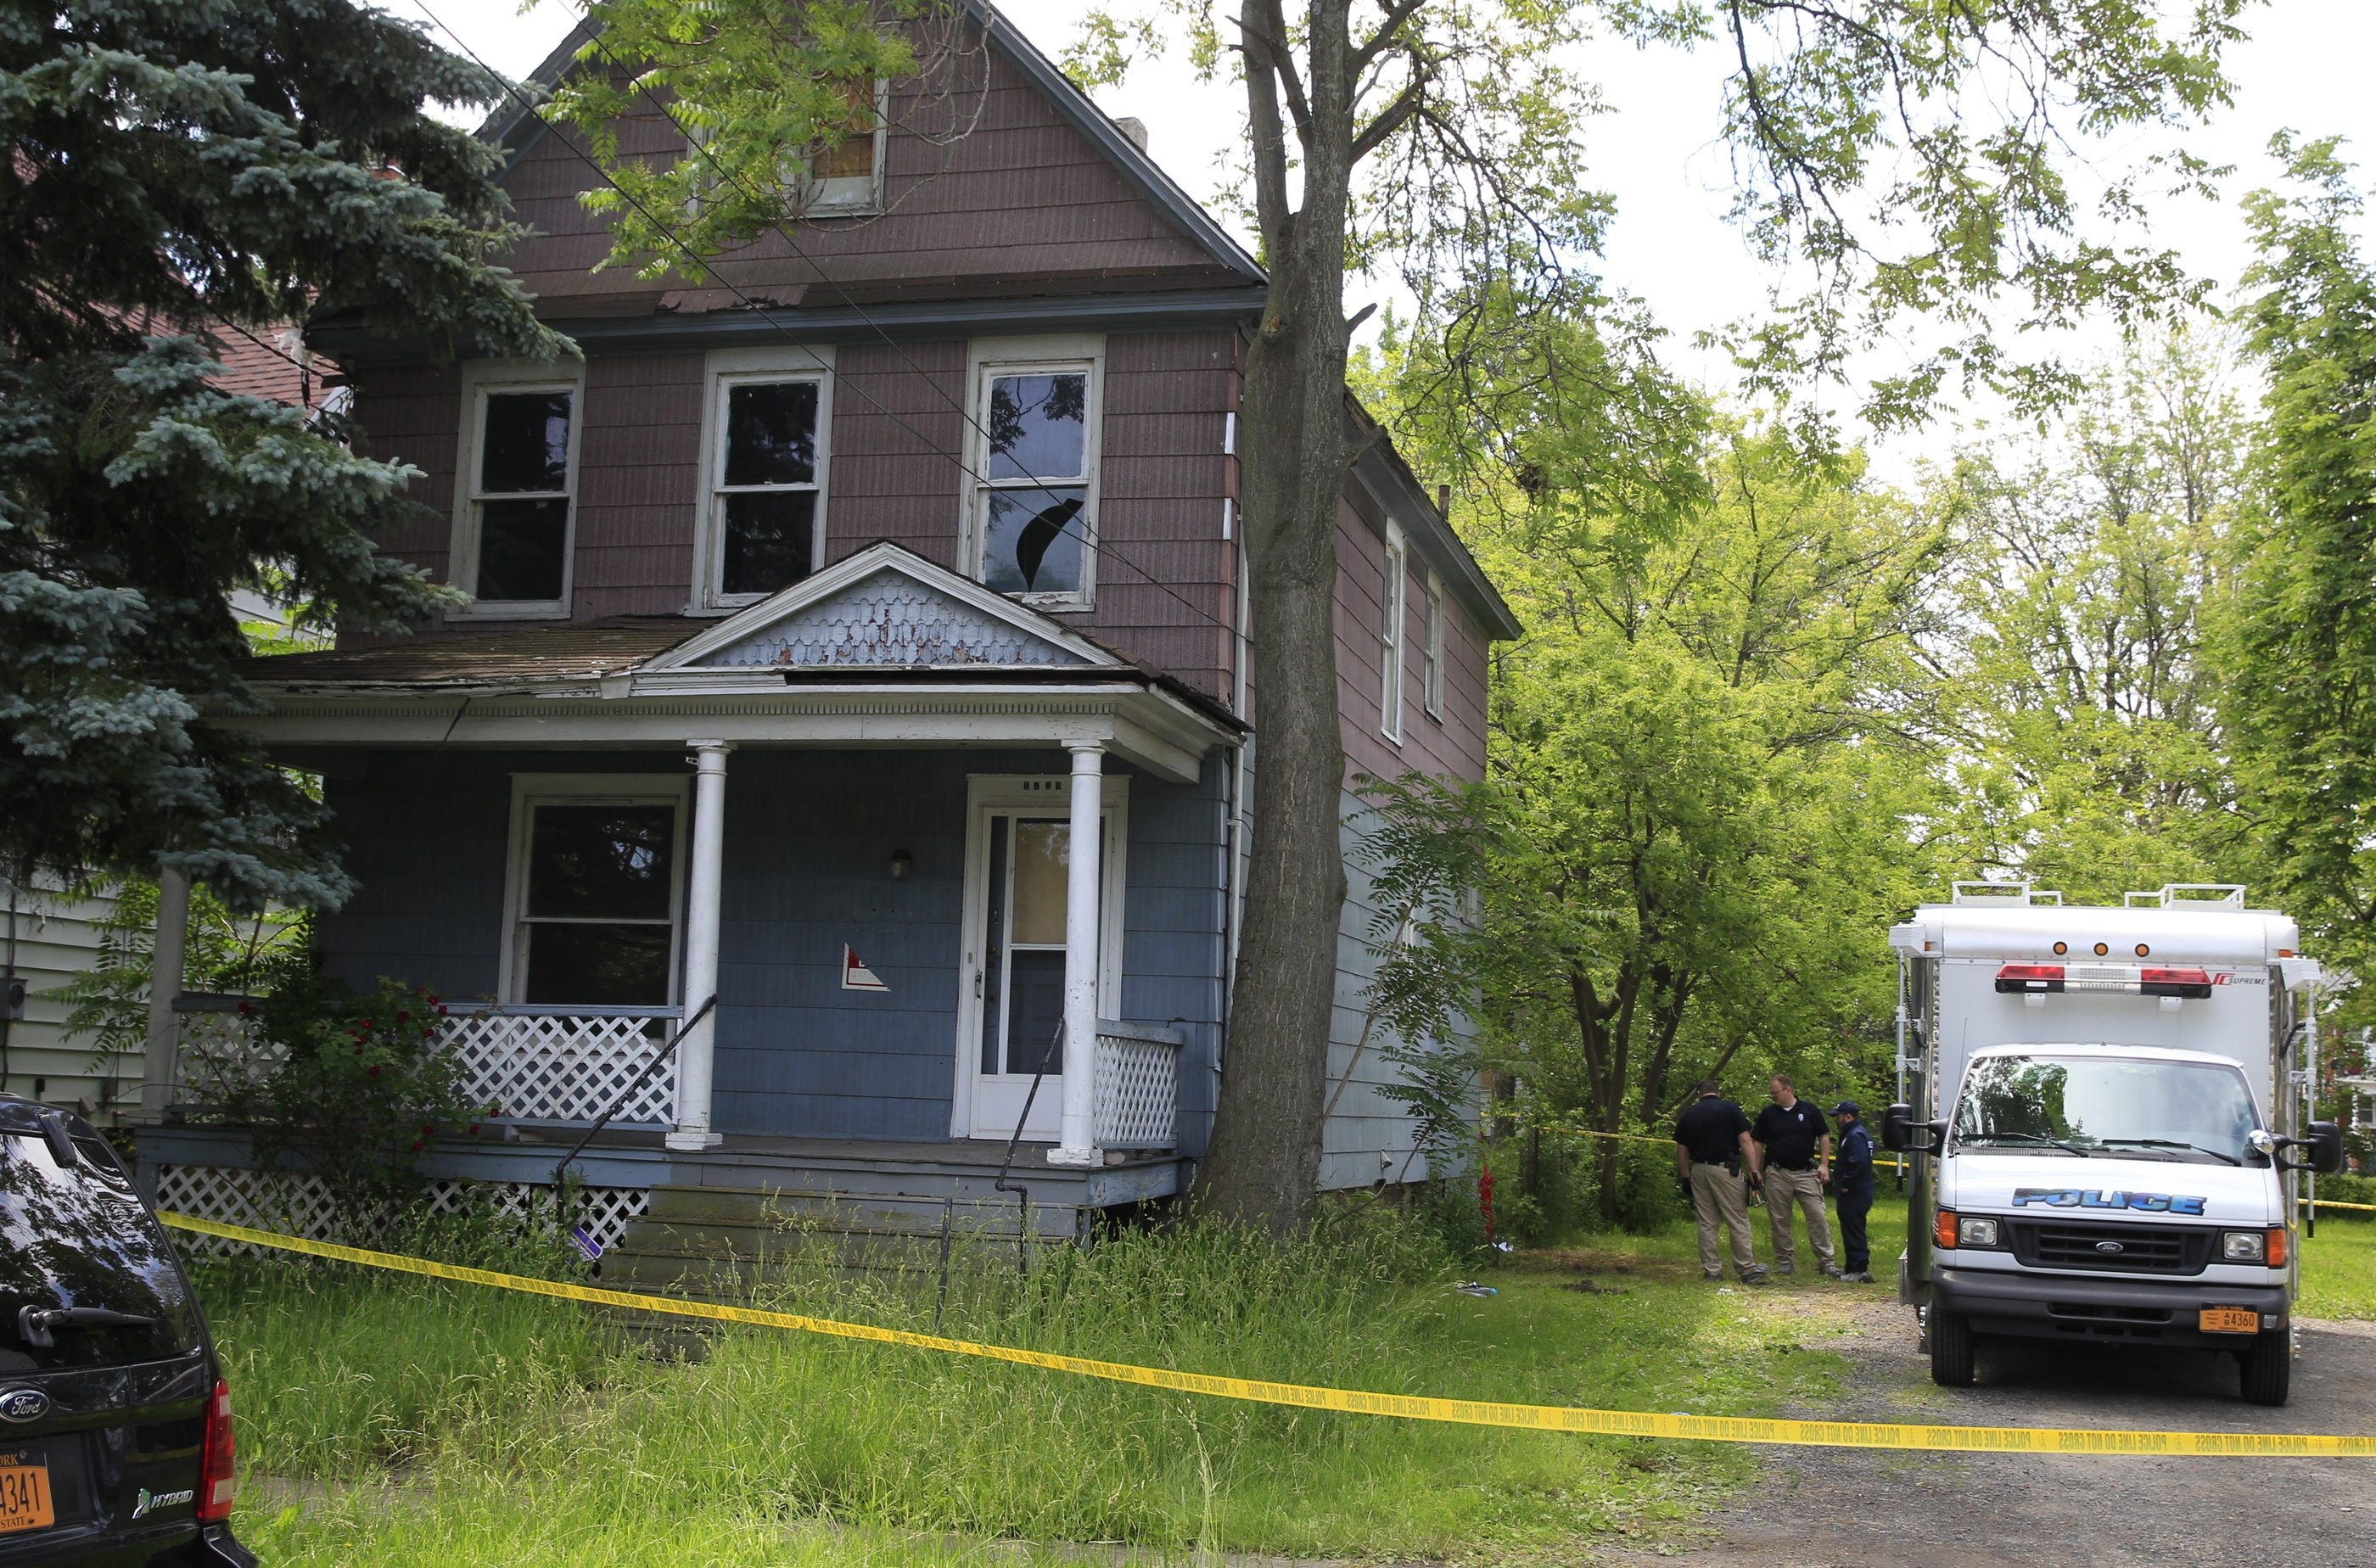 The headless torso of Terri Lynn Bills was found in this house at 1129 Willow Avenue  in Niagara Falls on Wednesday, June 17, 2015 . (John Hickey/Buffalo News)